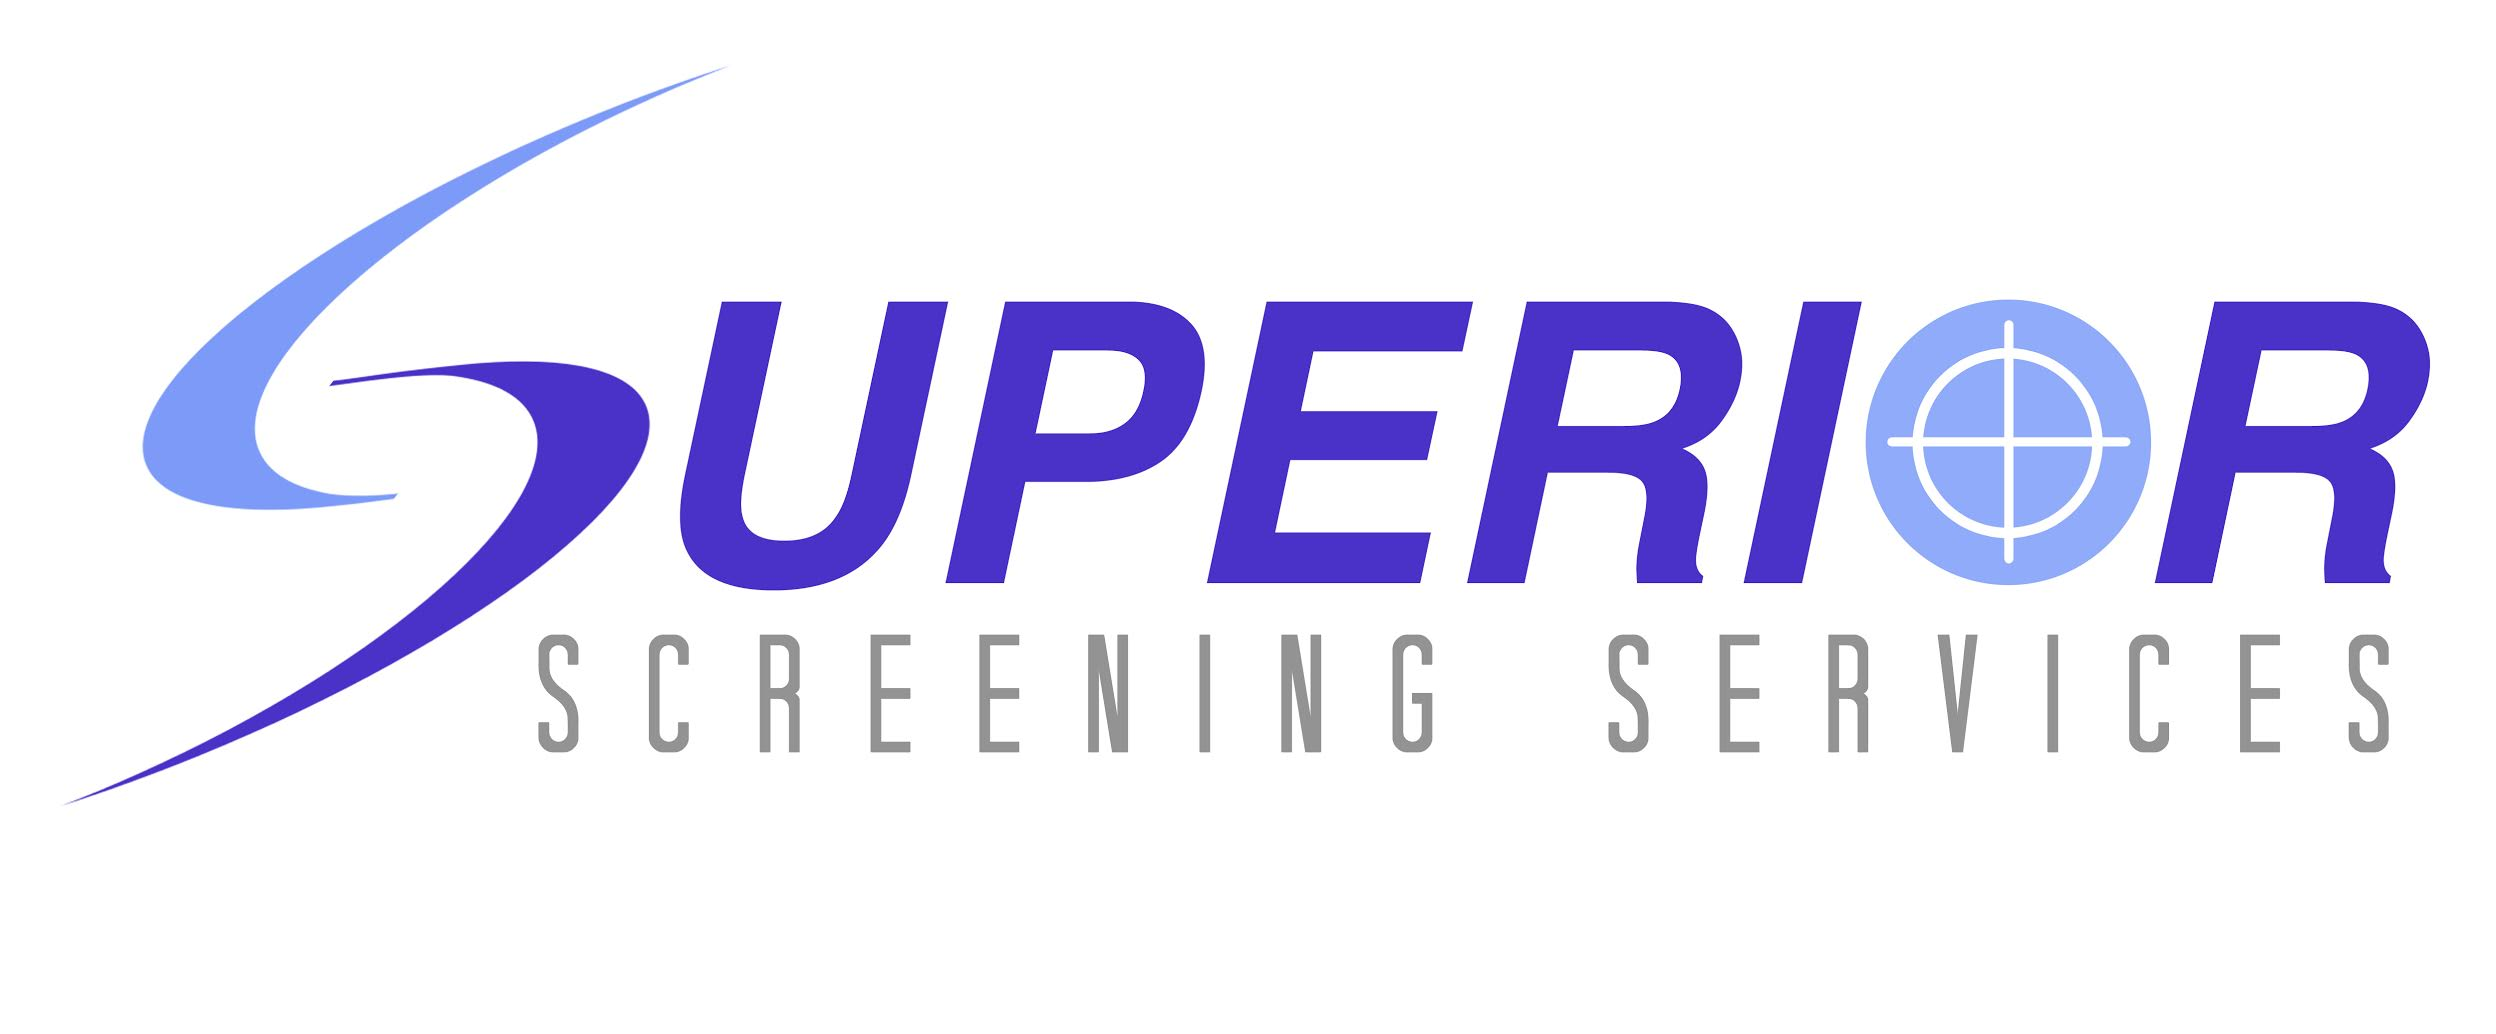 superior_screening_services